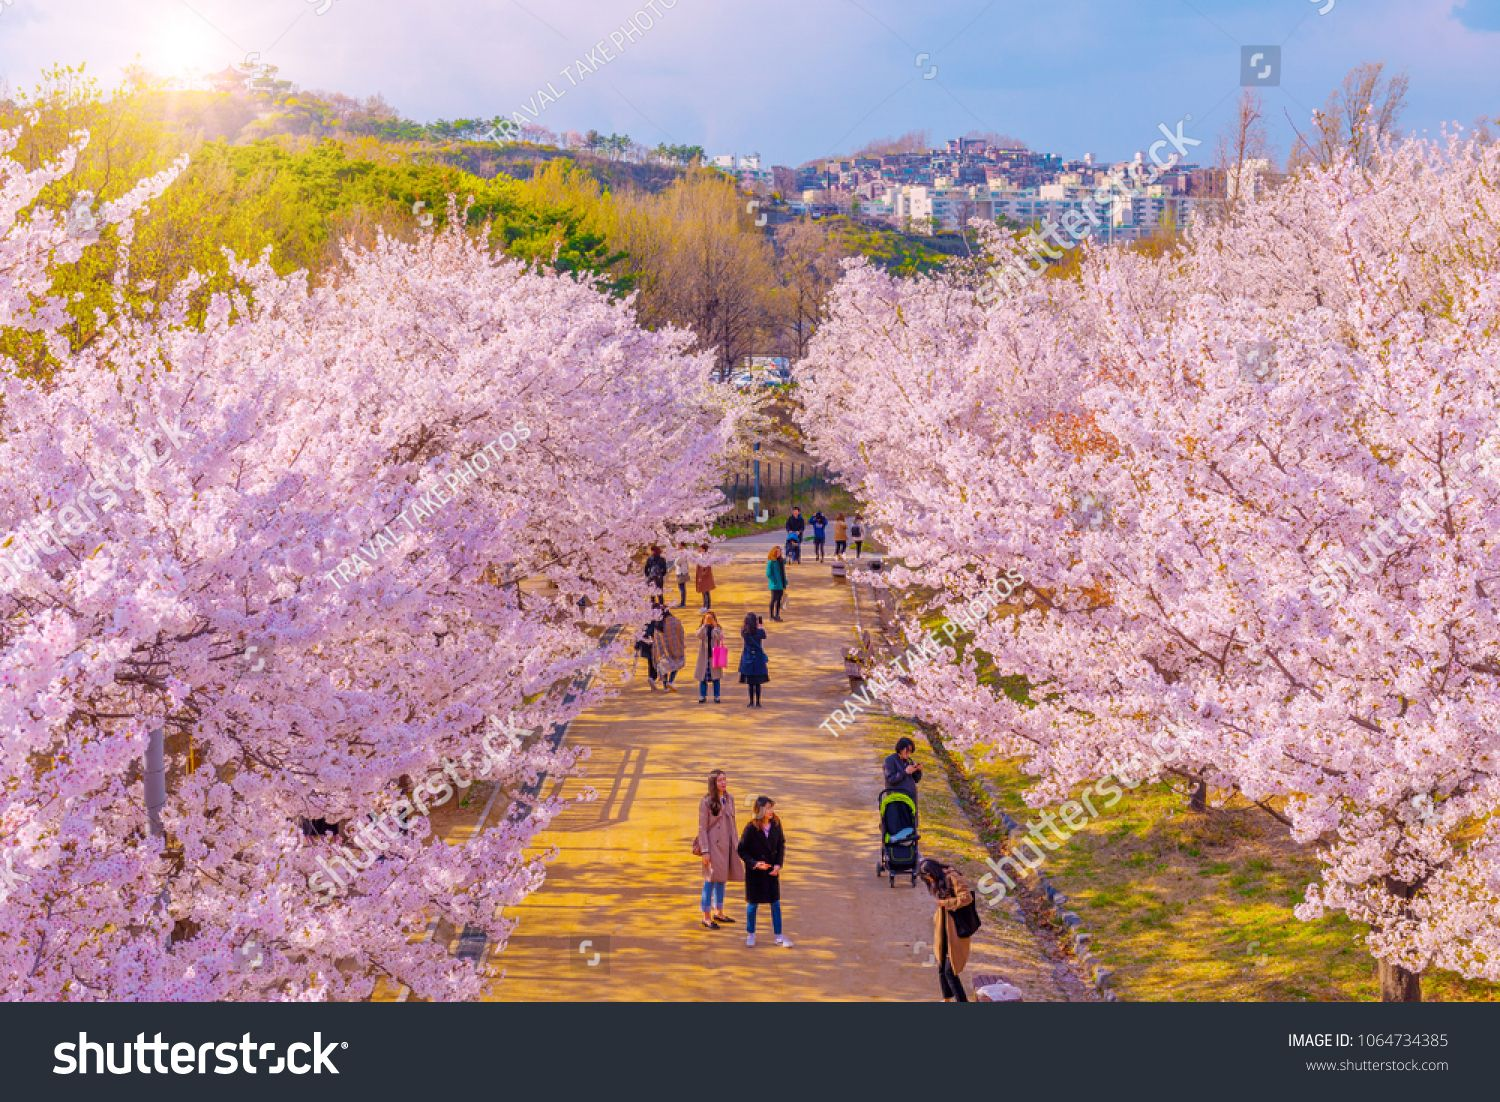 Seoul South Korea 7 April 2018 Cherry Blossom In Spring At Seoul Forest Park In Seoul South Korea Sponsored Aff Stock Photos Photo Editing Forest Park